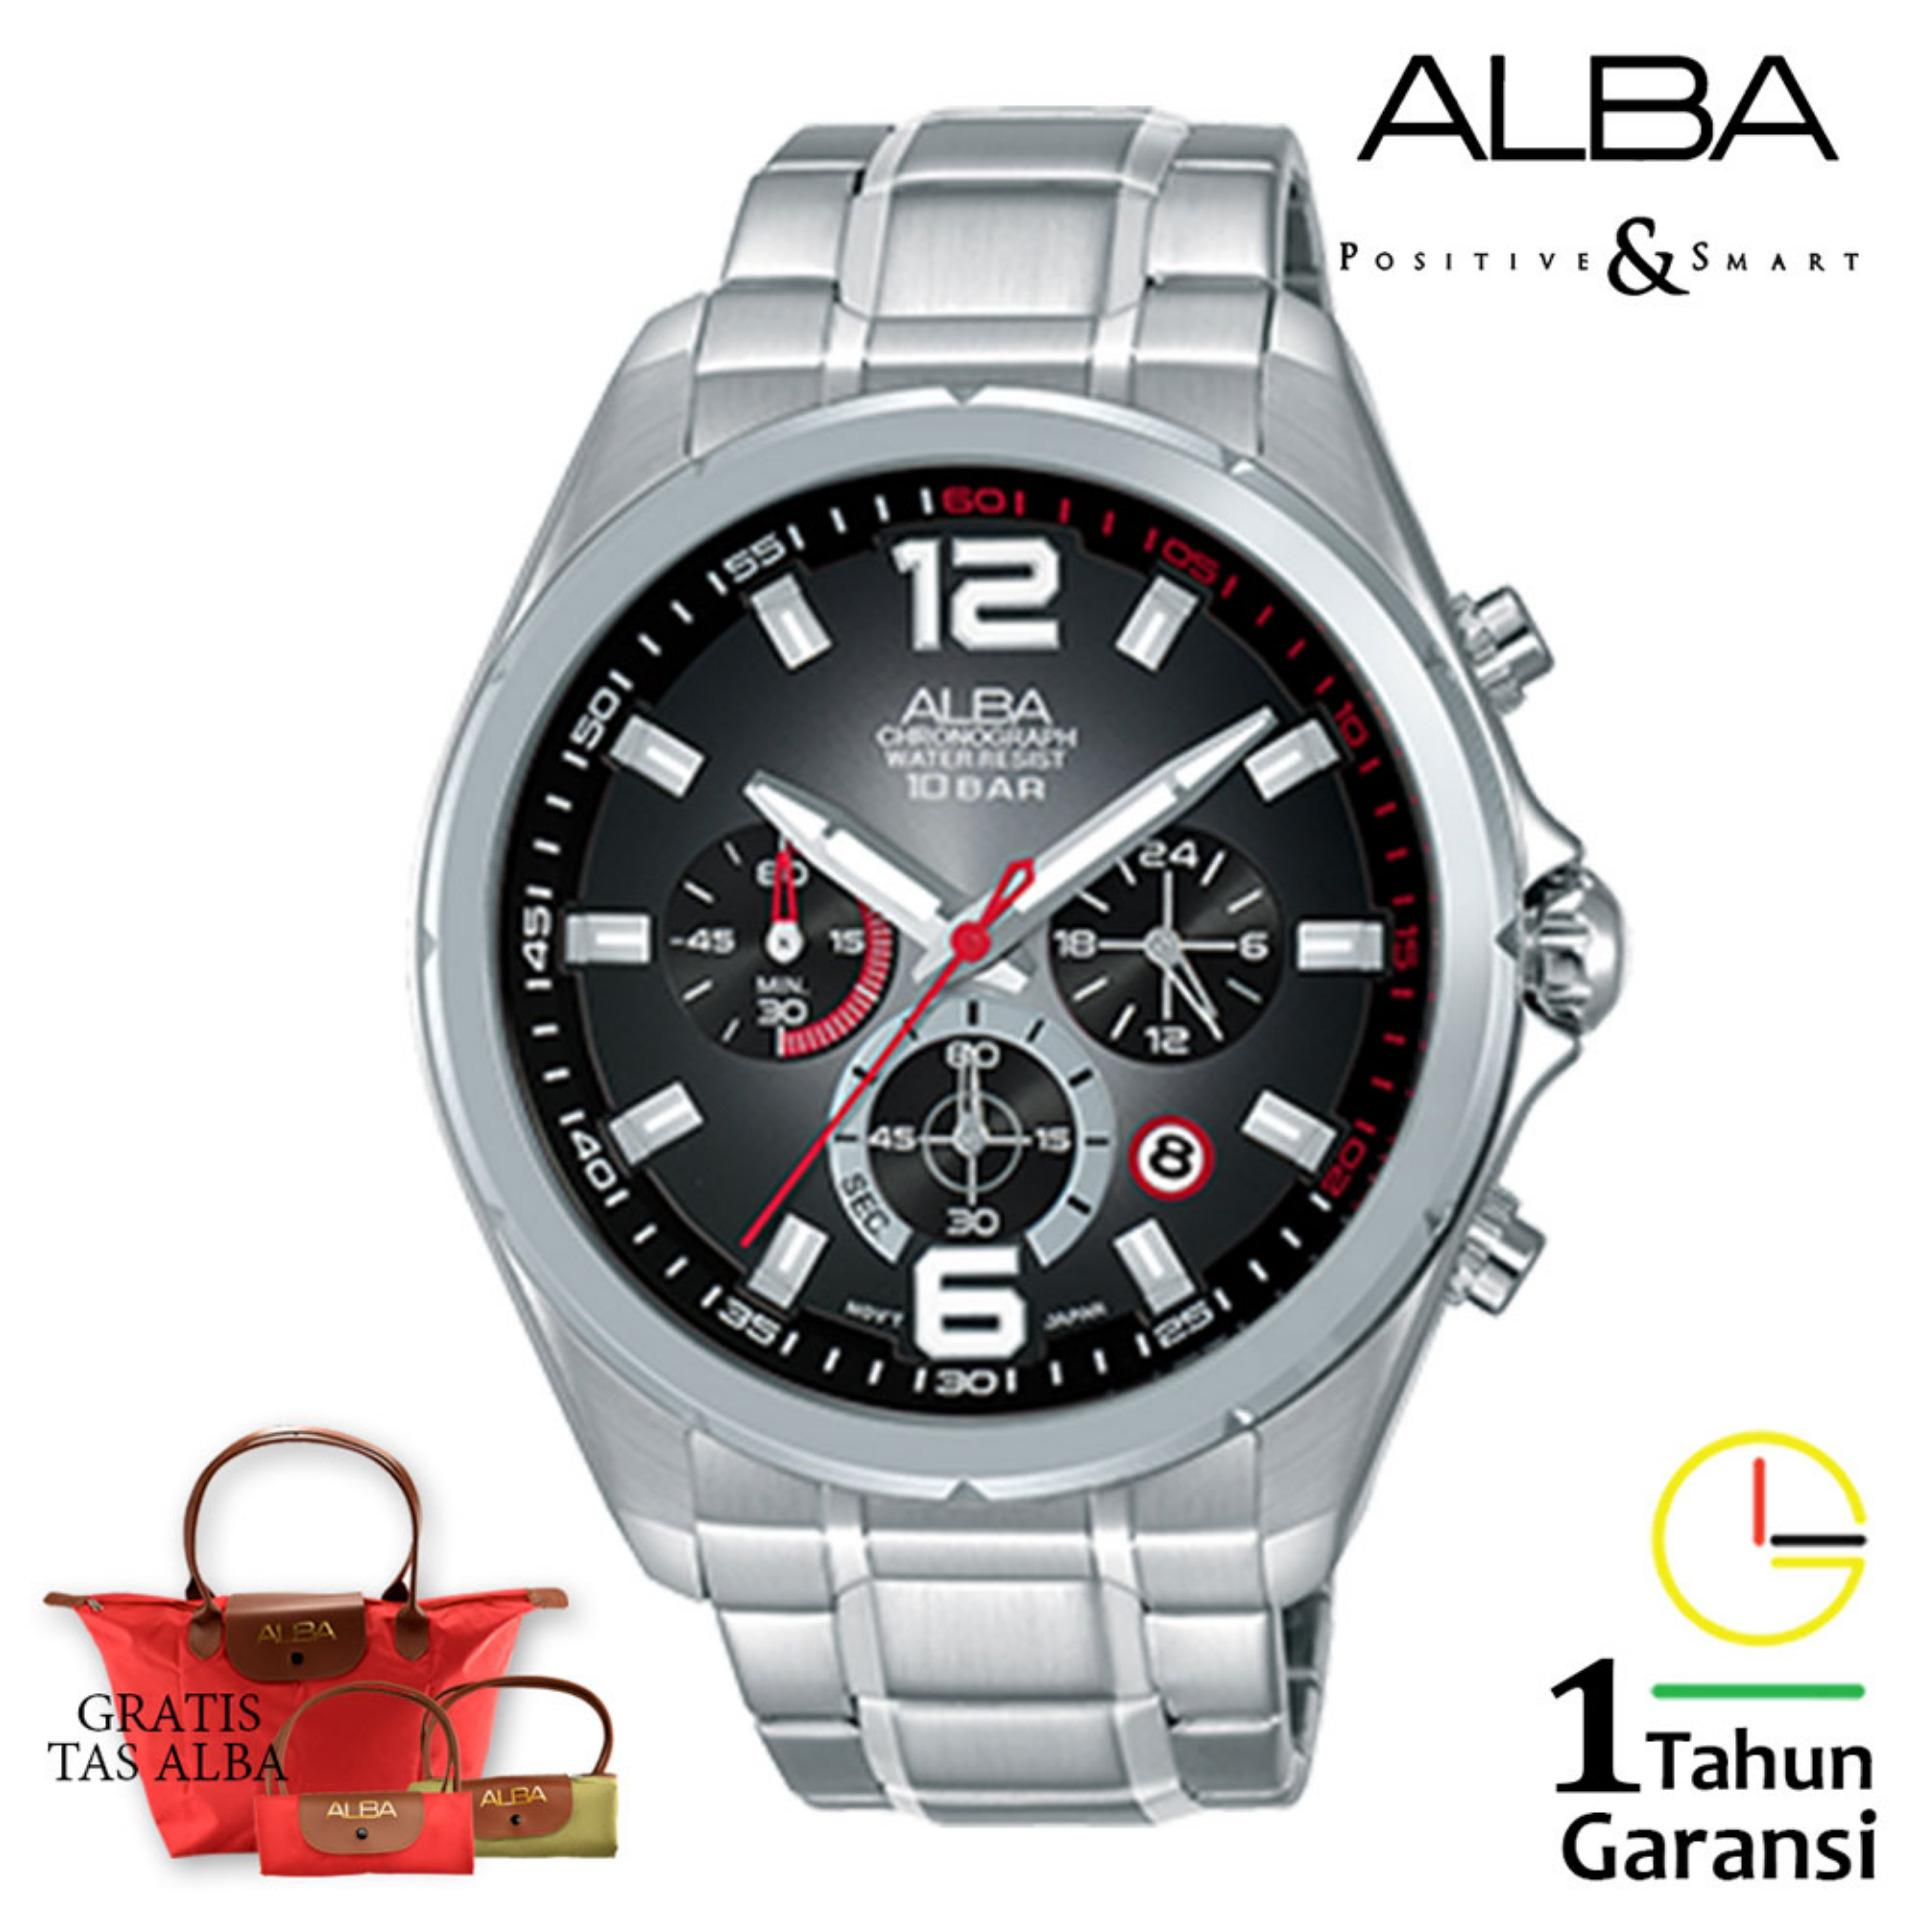 Alba AT3B Series Chronograph Jam Tangan Pria Black Dial Stainless Steel Case Leather Strap